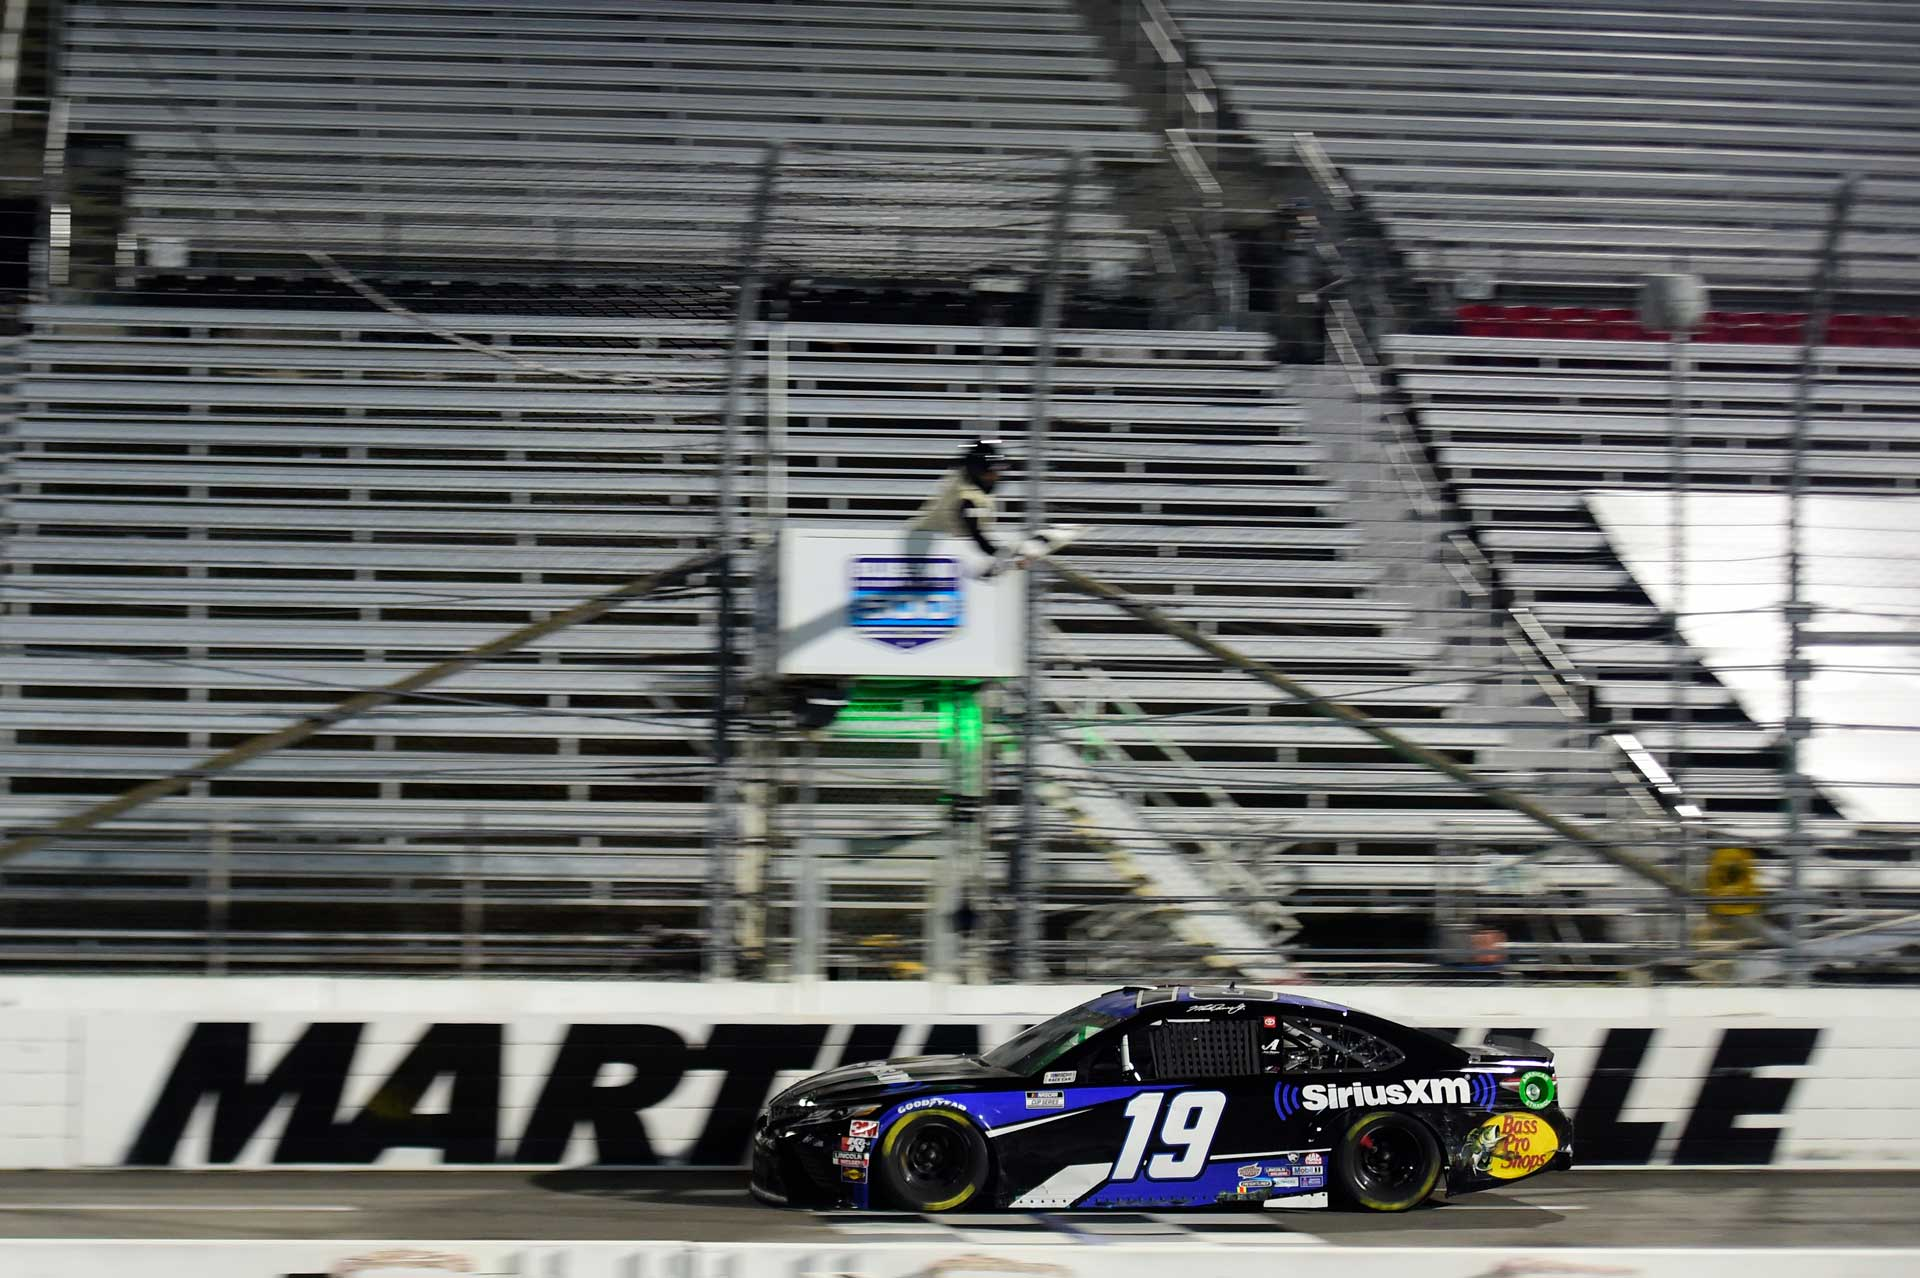 Martin Truex Jr. takes the checkered flag to win the Blu-Emu Maxiumum Pain Relief 500 in Martinsville.